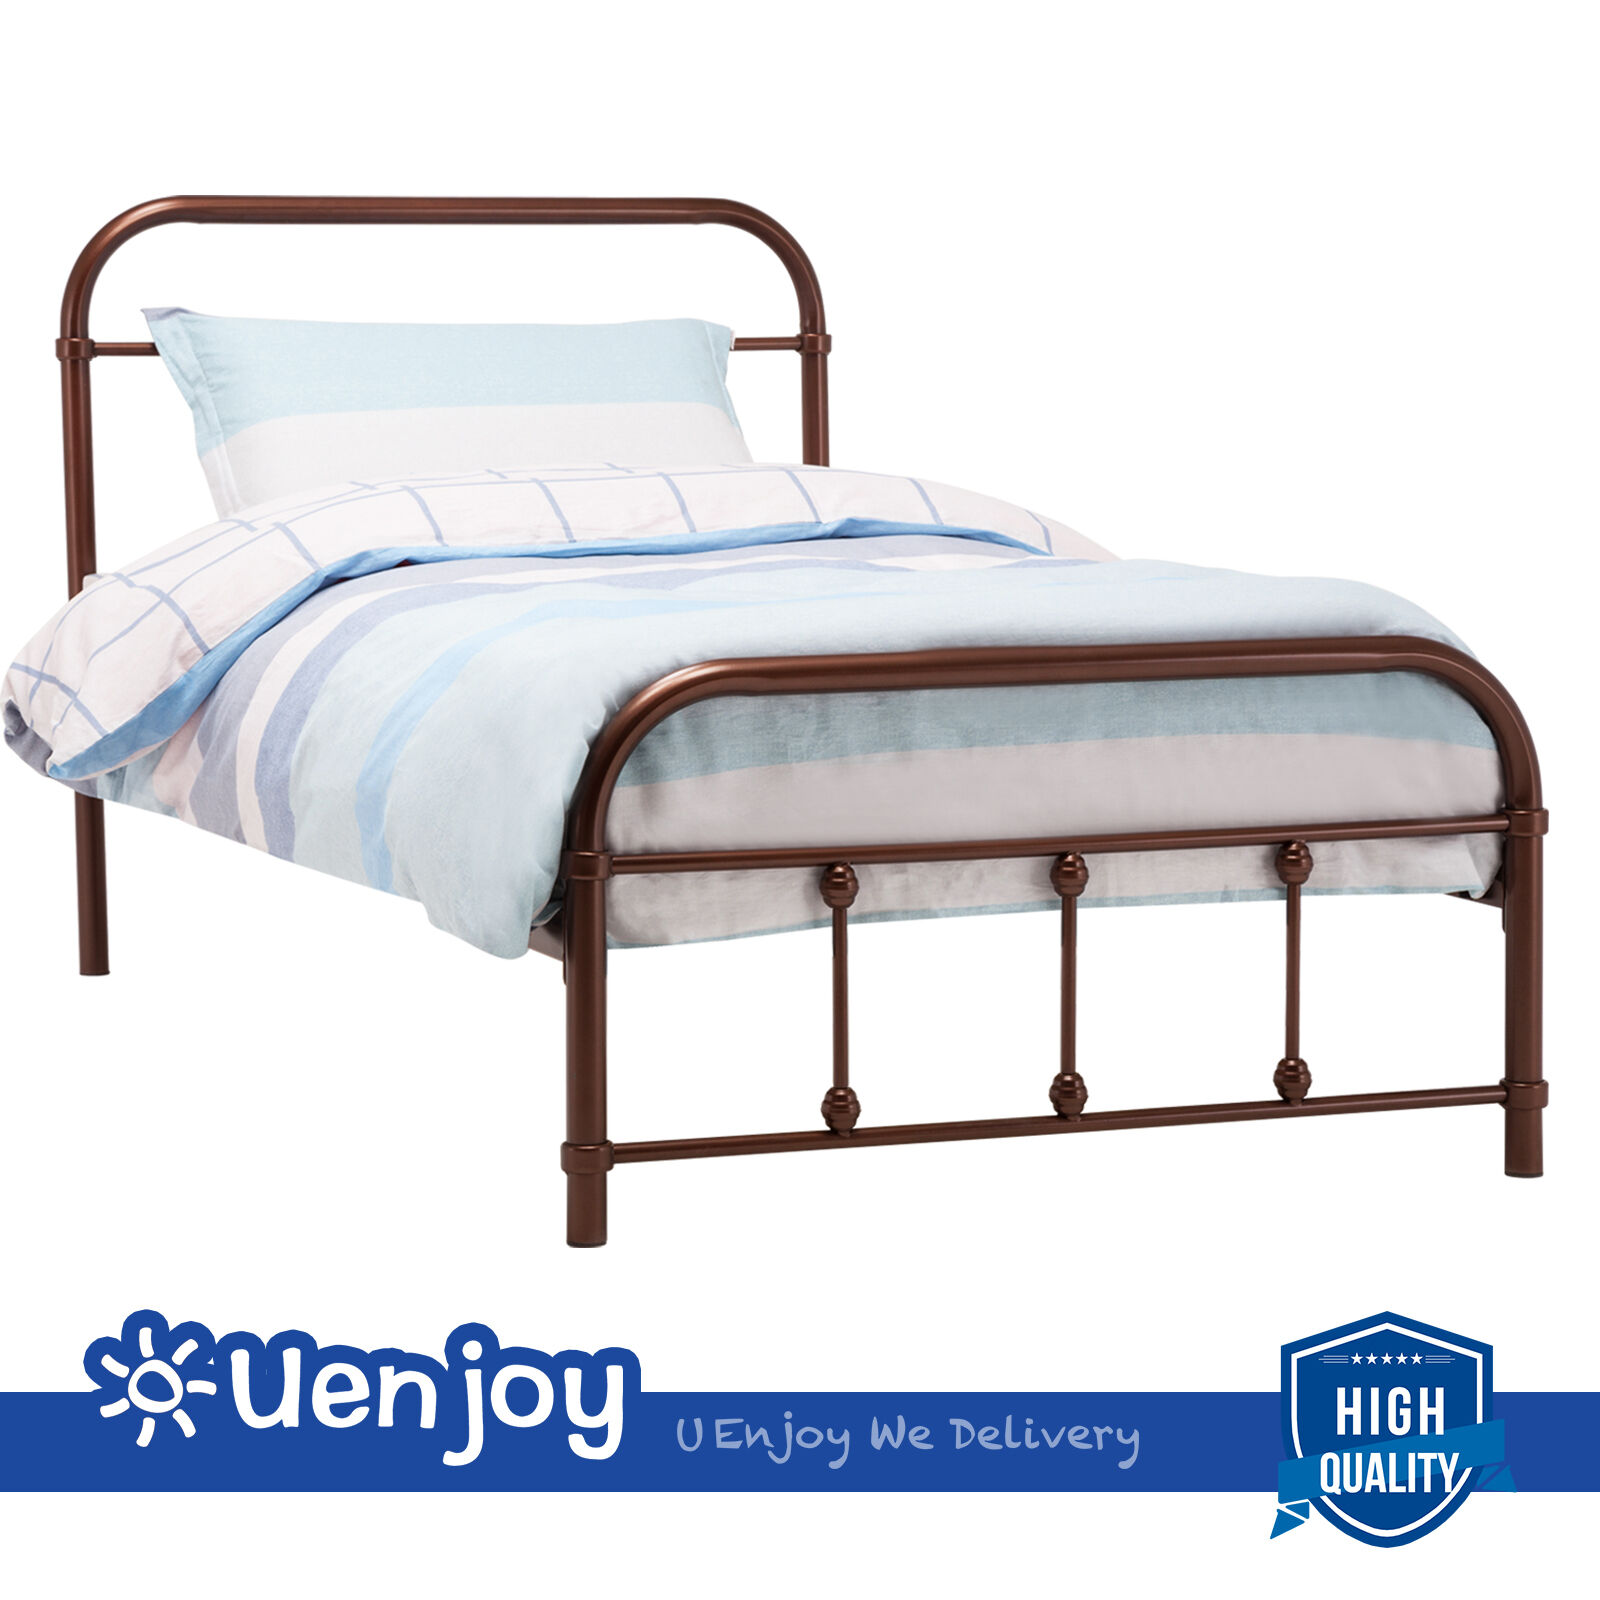 twin size metal bed frame wood slats platform bedroom with headboard footboard 603658819743 ebay. Black Bedroom Furniture Sets. Home Design Ideas